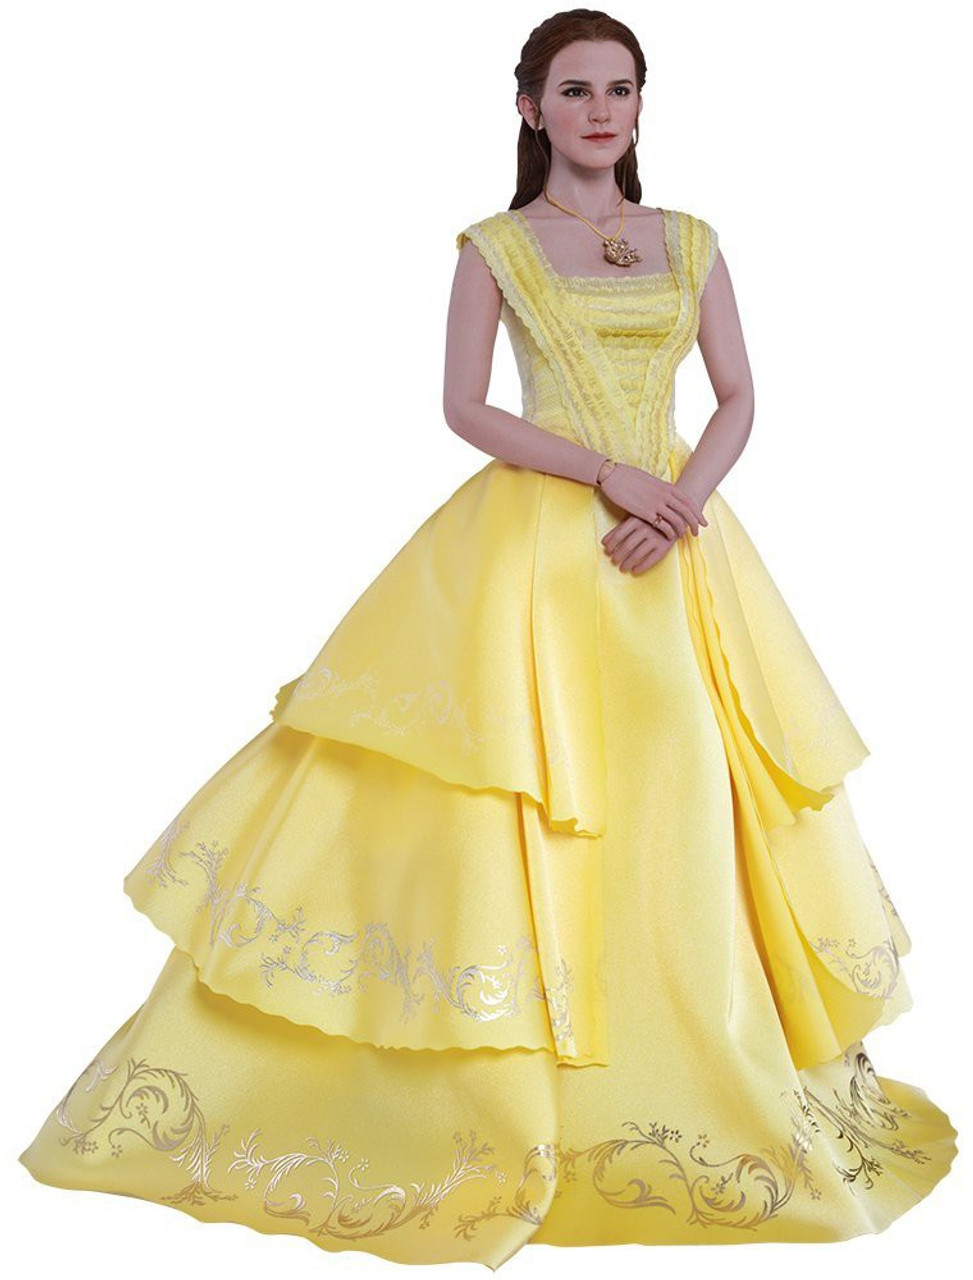 Disney Beauty and the Beast Movie Masterpiece Belle 1/6 Collectible Figure (Pre-Order ships March)